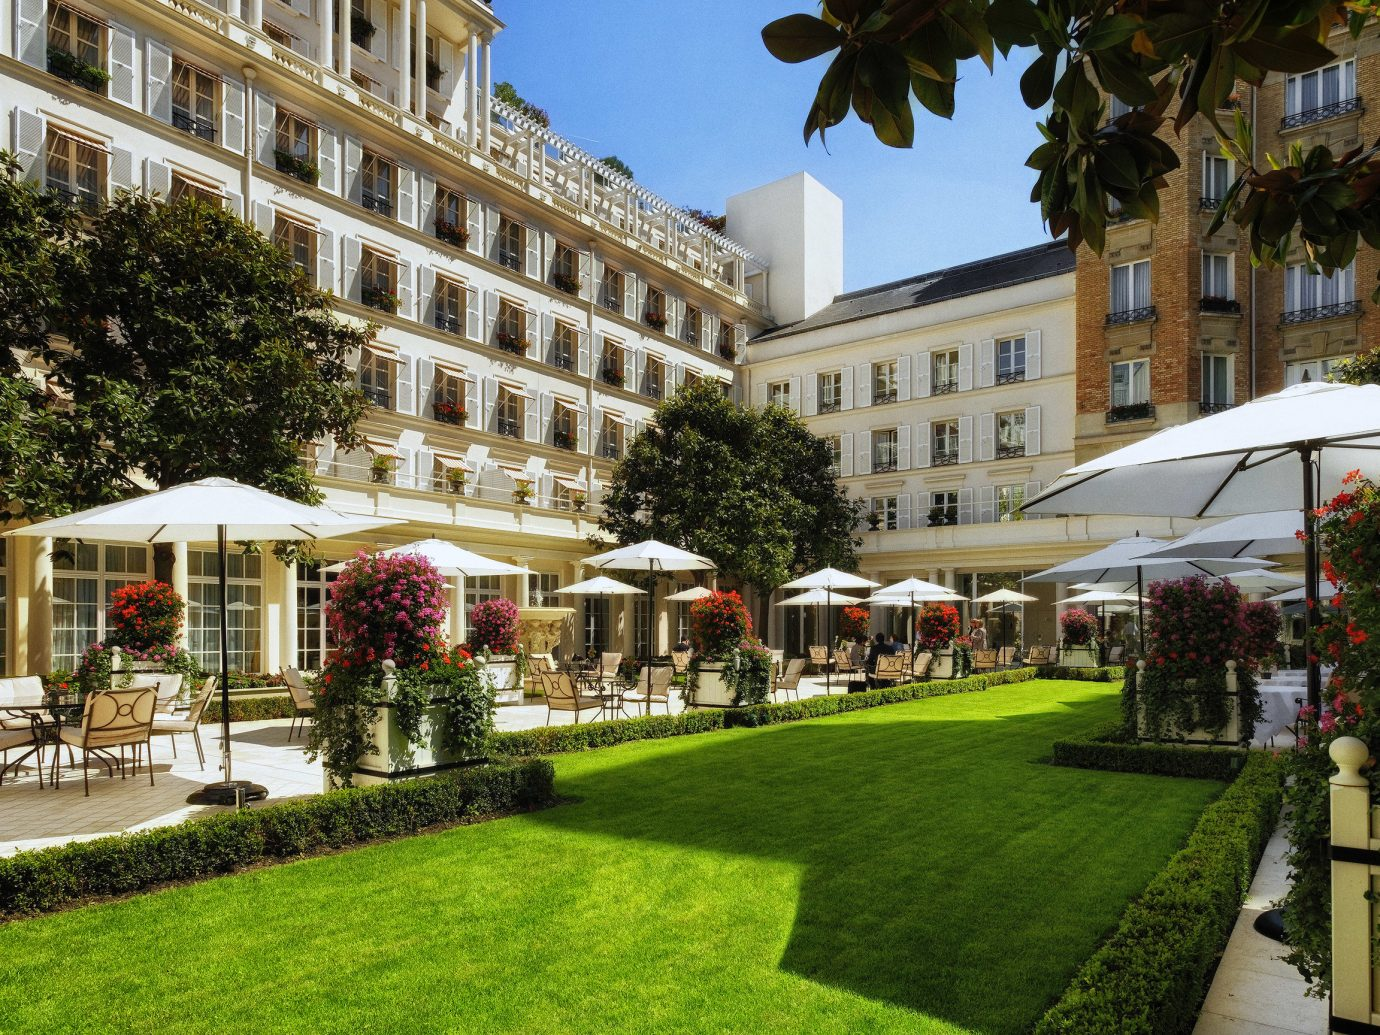 France Hotels Paris grass tree outdoor building mixed use Resort estate real estate City hotel plant plaza palm tree park arecales mansion condominium Courtyard lawn government building